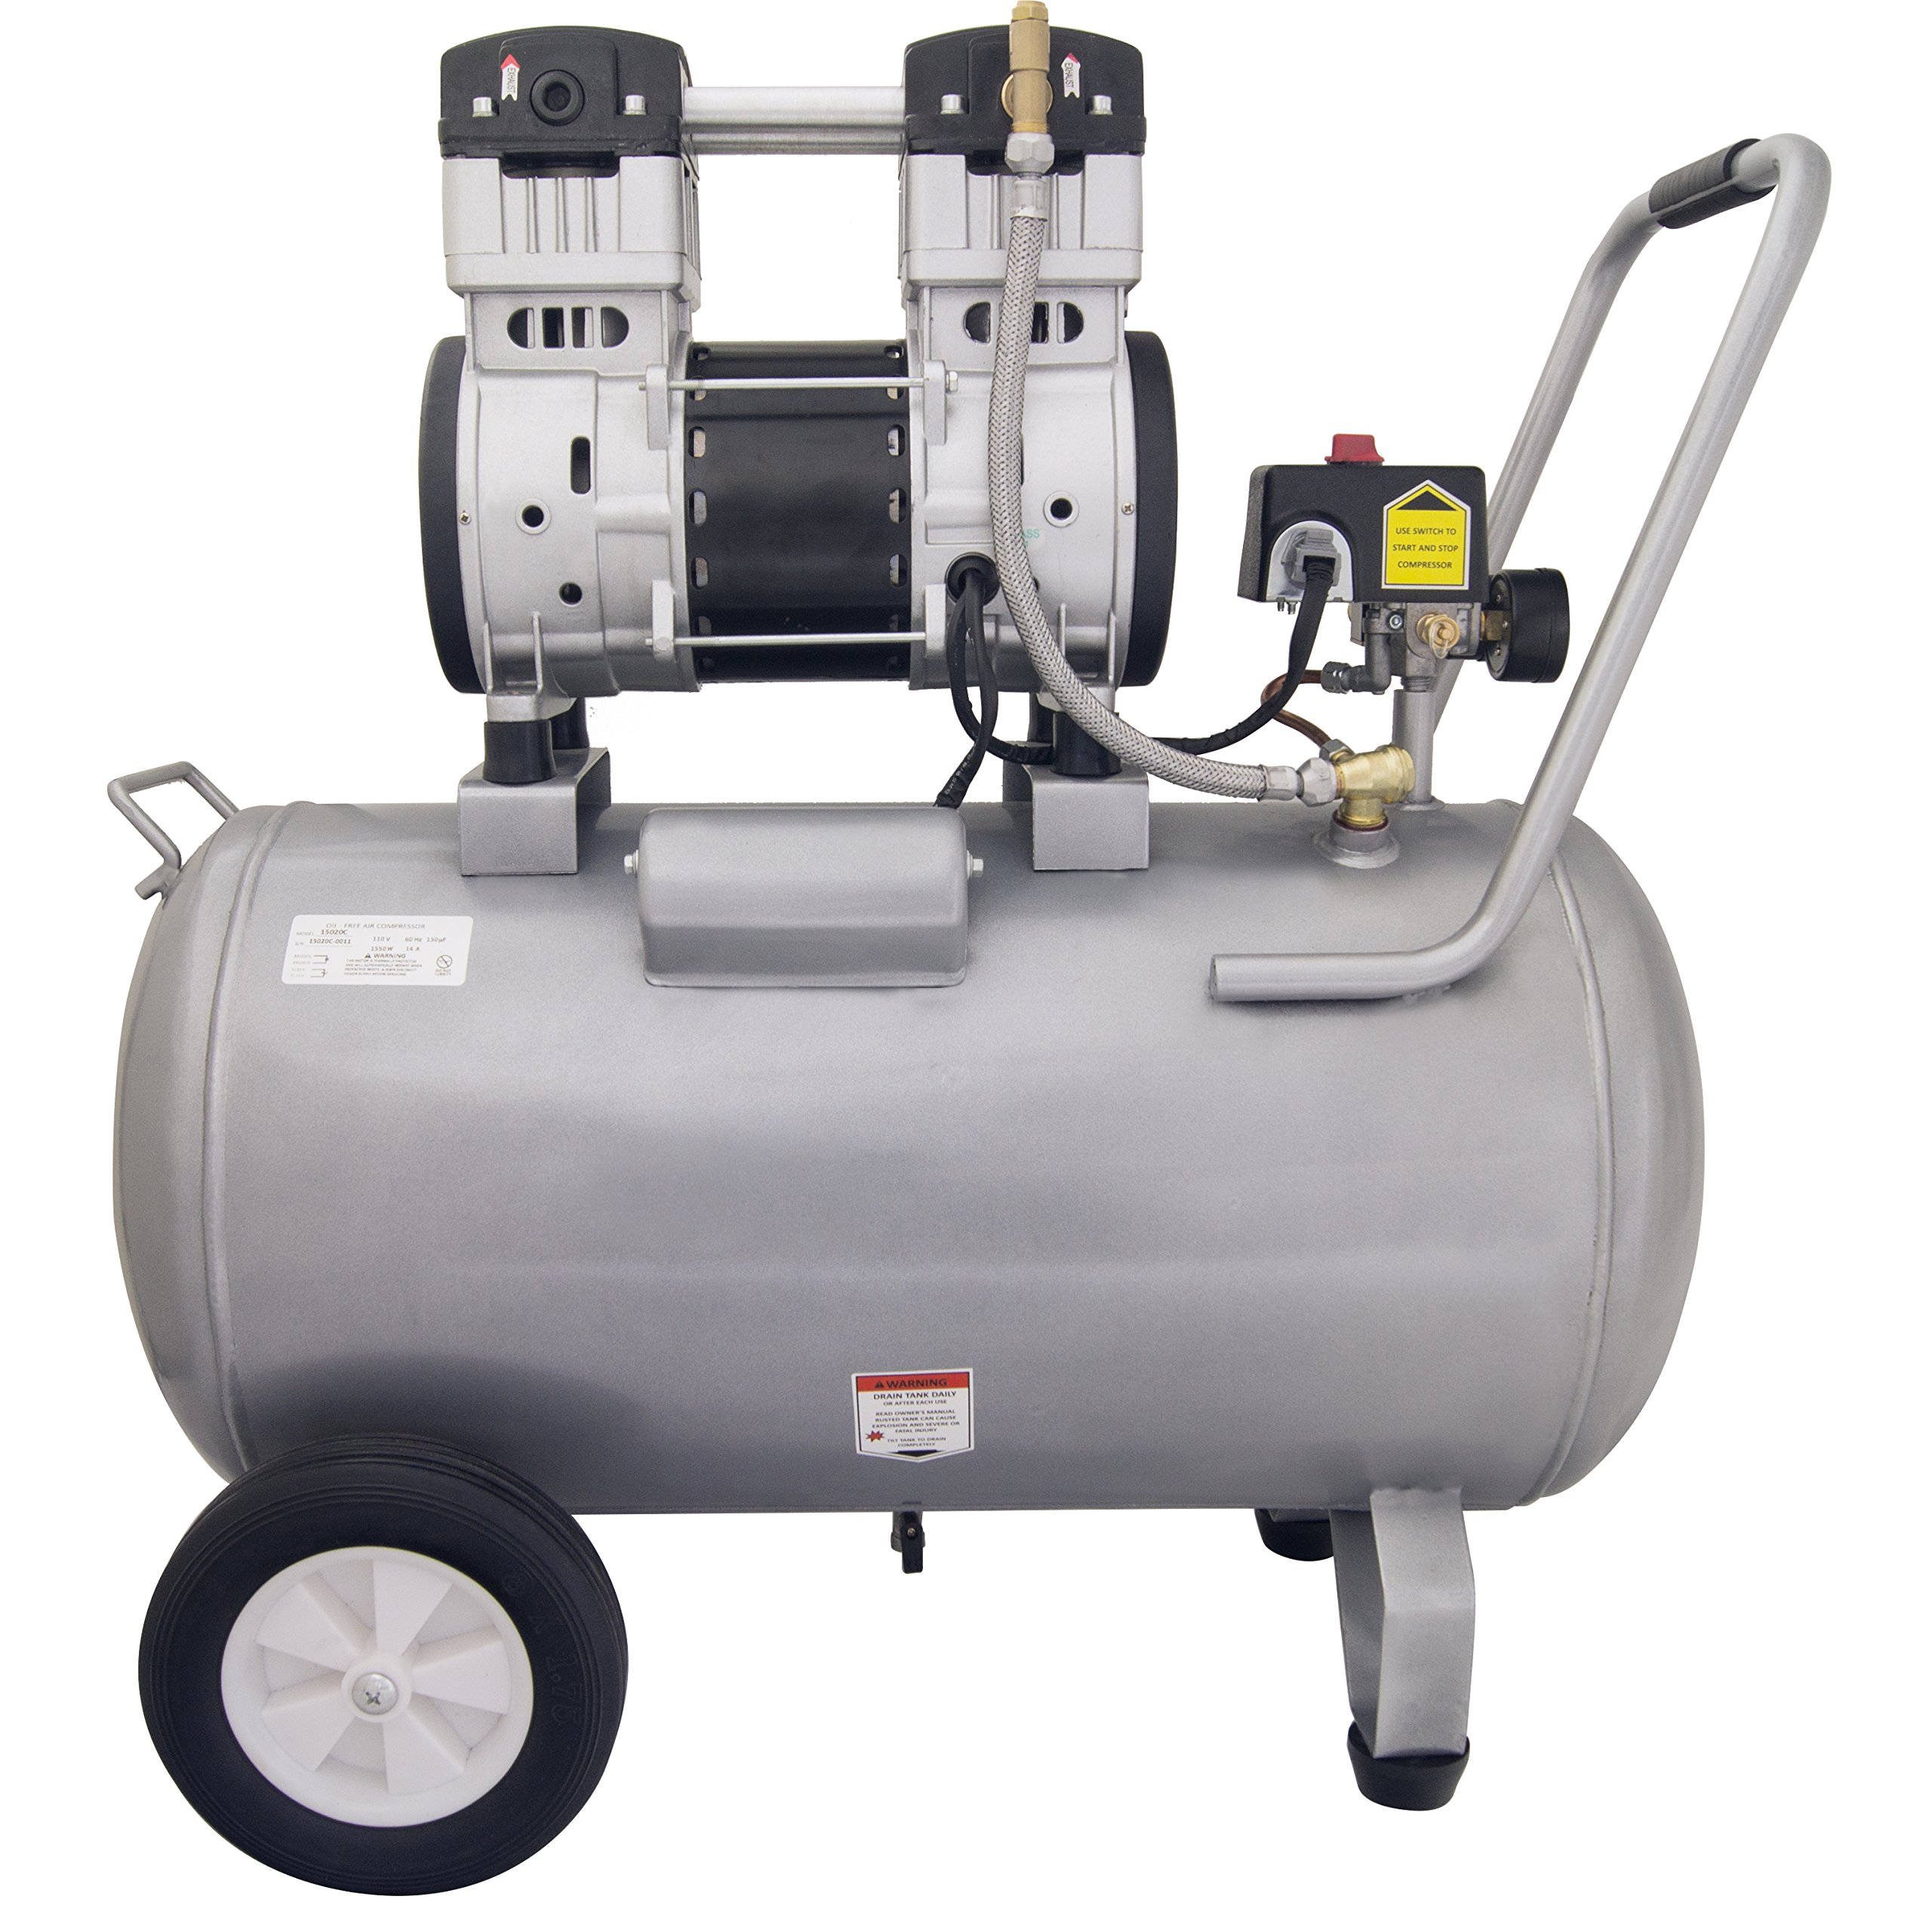 California Air Tools 15020C Ultra Quiet and Oil-Free 2.0 HP 15.0-Gallon Steel Tank Air Compressor by California Air Tools (Image #2)